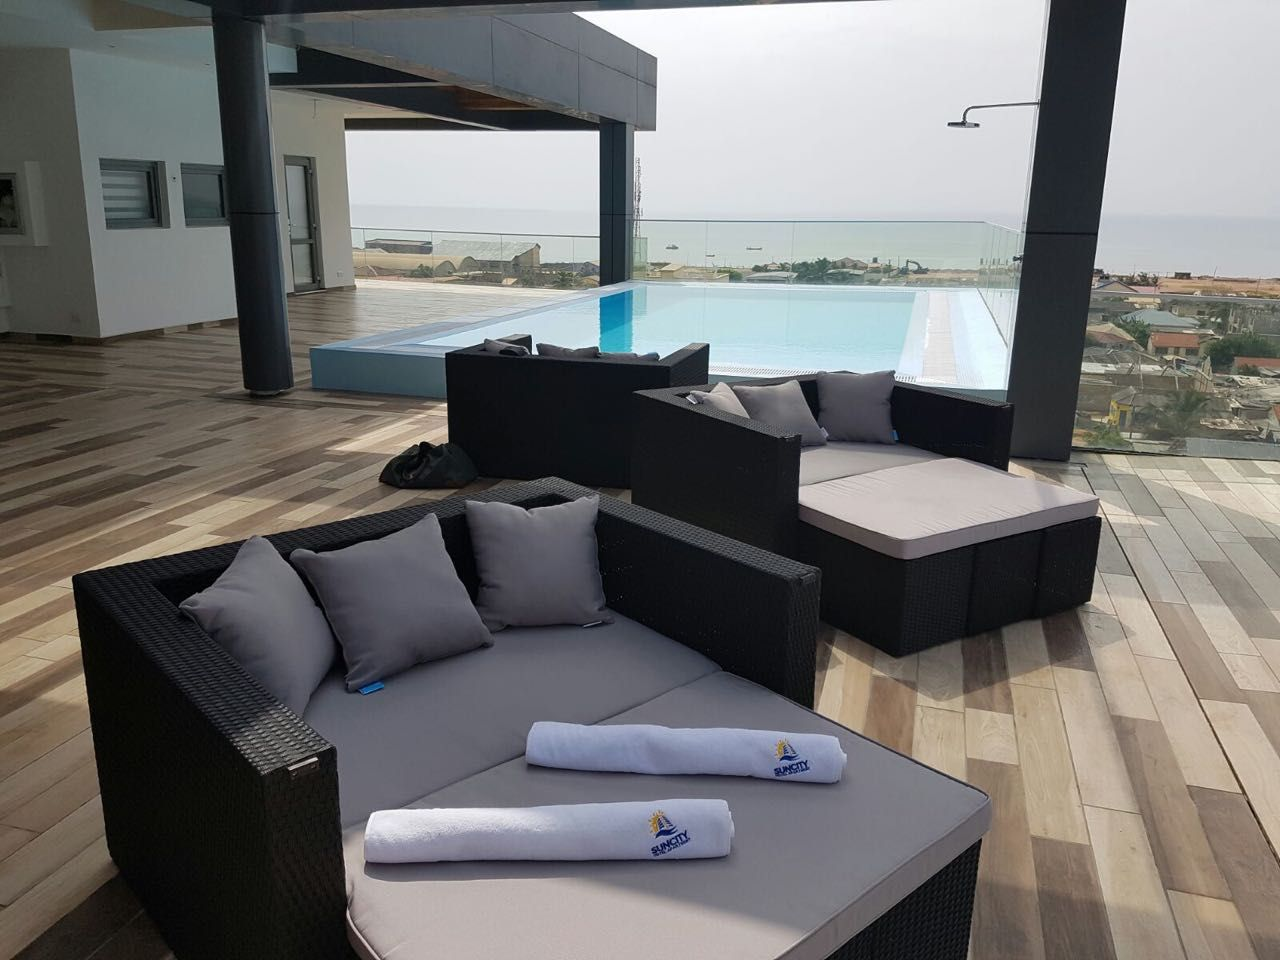 Suncity Apartment Hotel Osu Labadi Road Accra Apartment Hotel Outdoor Sectional Sofa